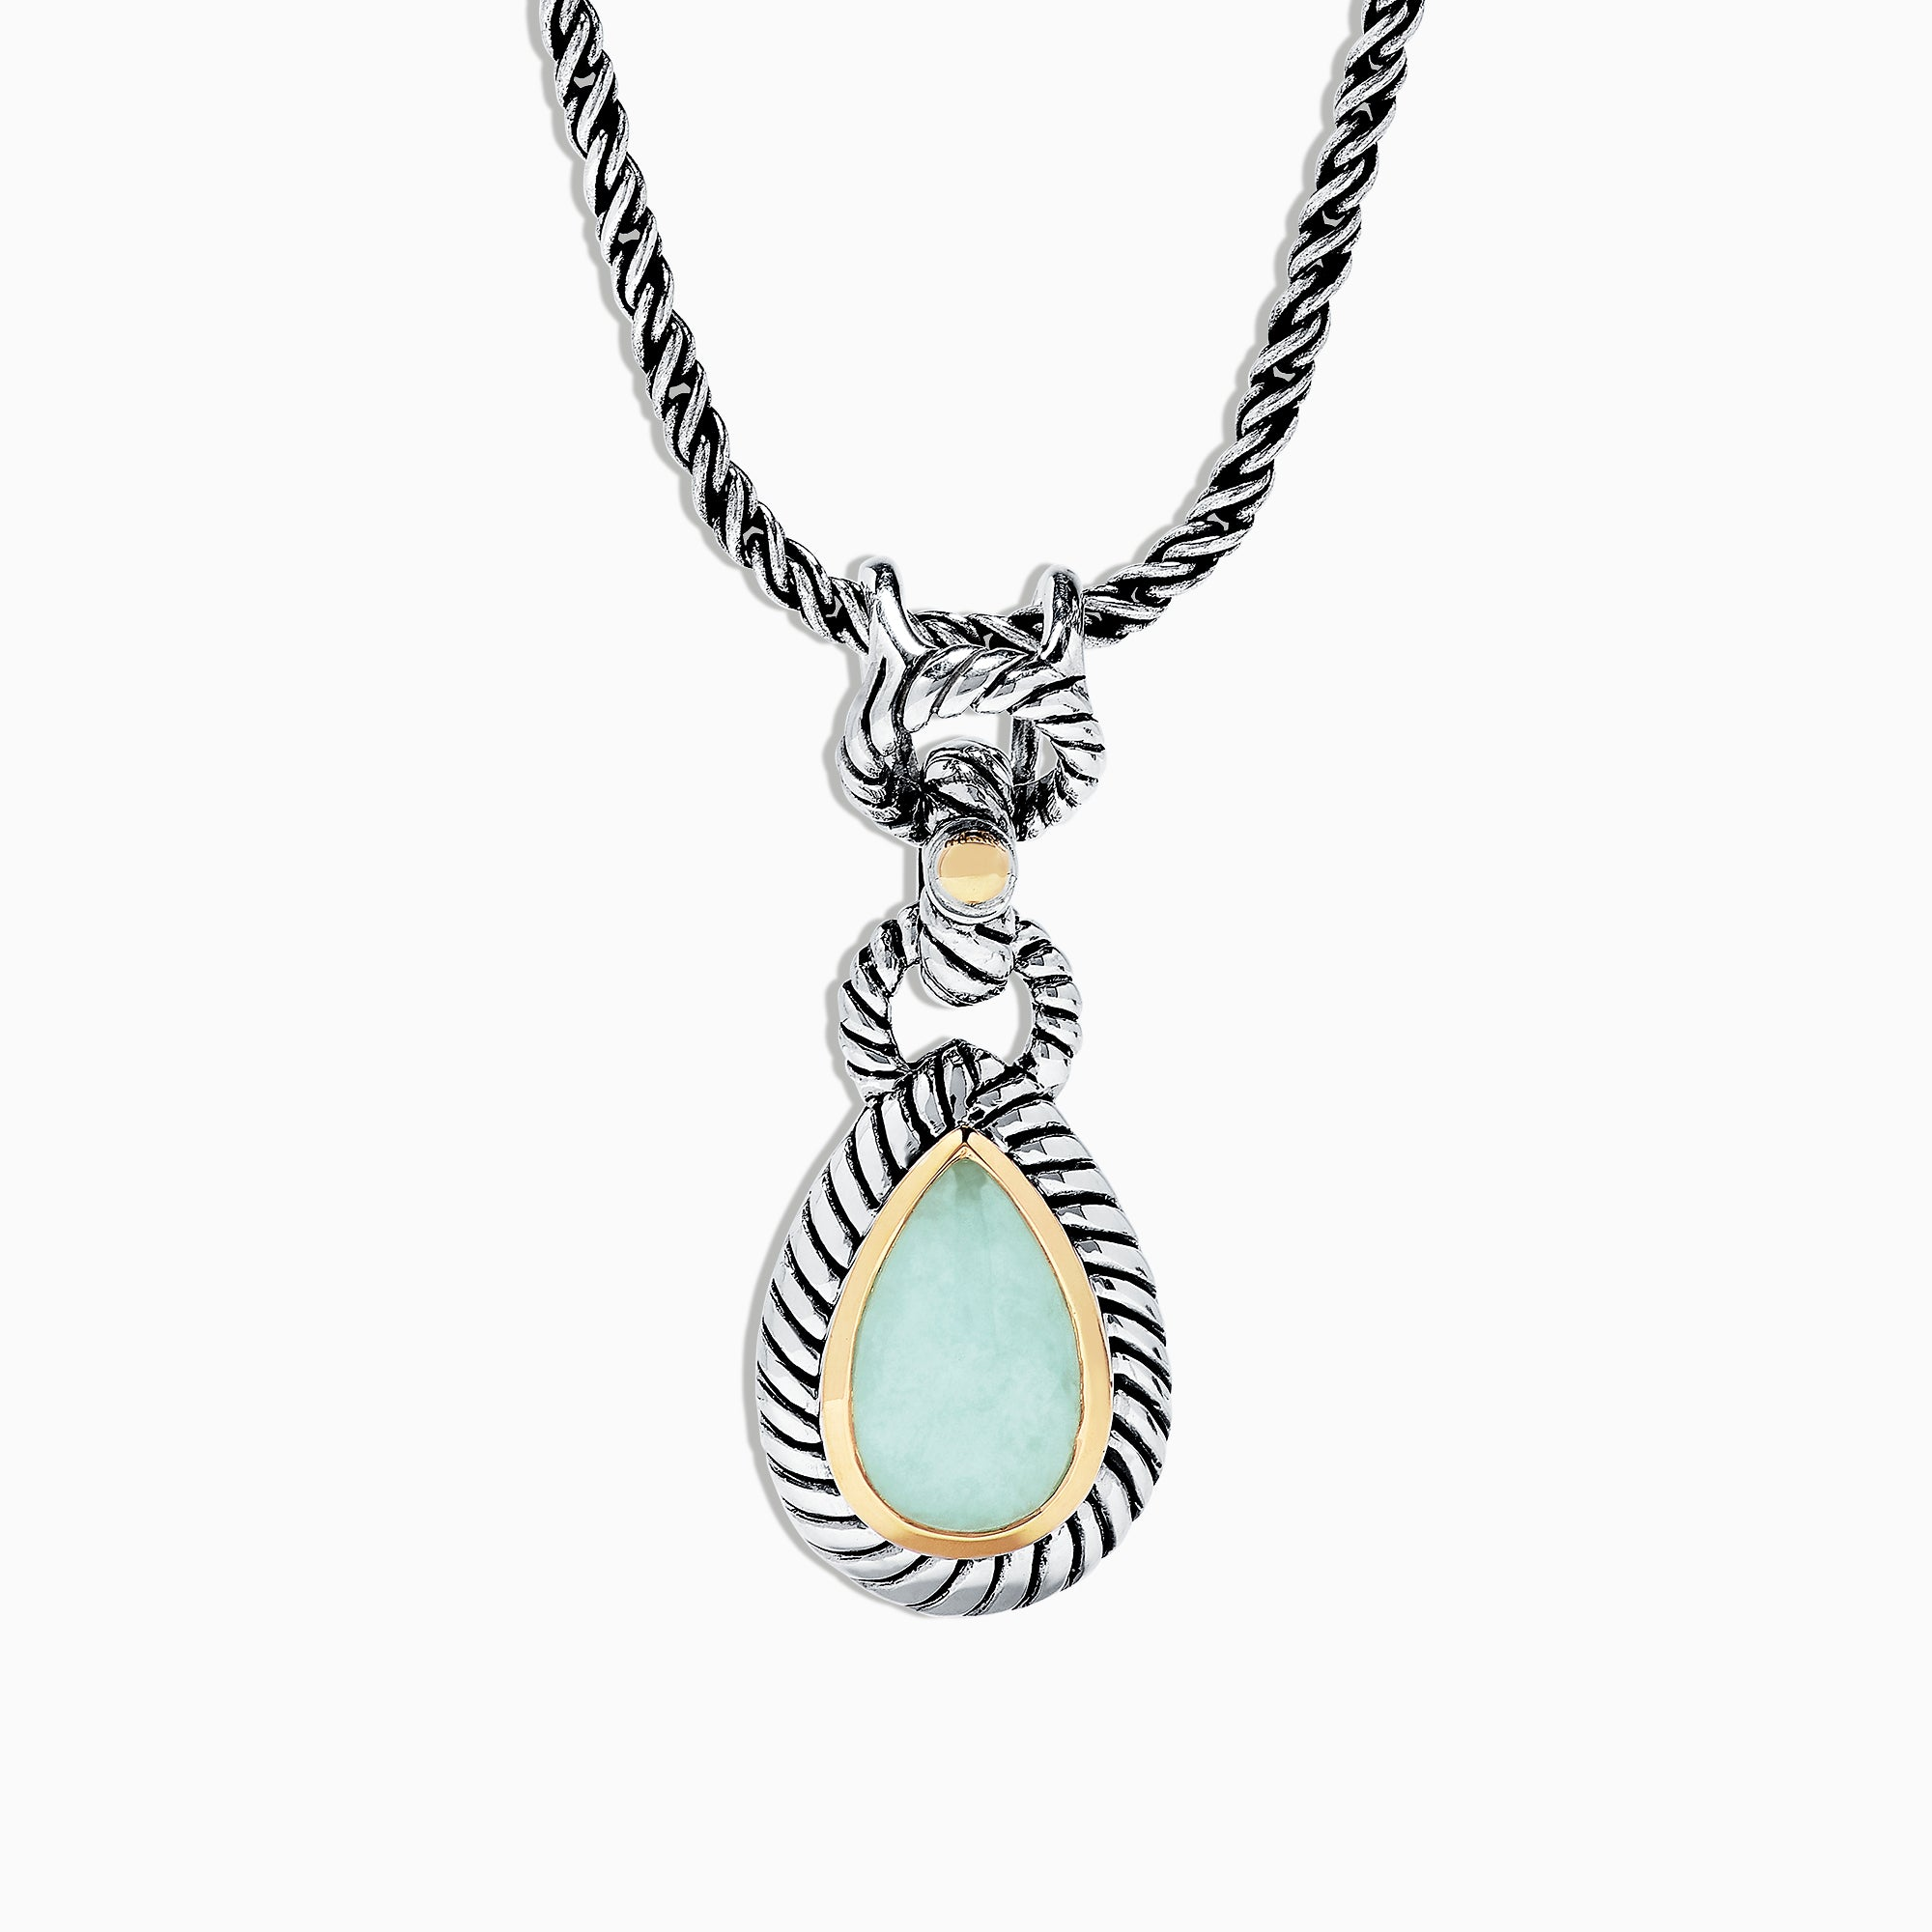 Effy 925 Sterling Silver & 18K Yellow Gold Jade Pendant, 3.80 TCW